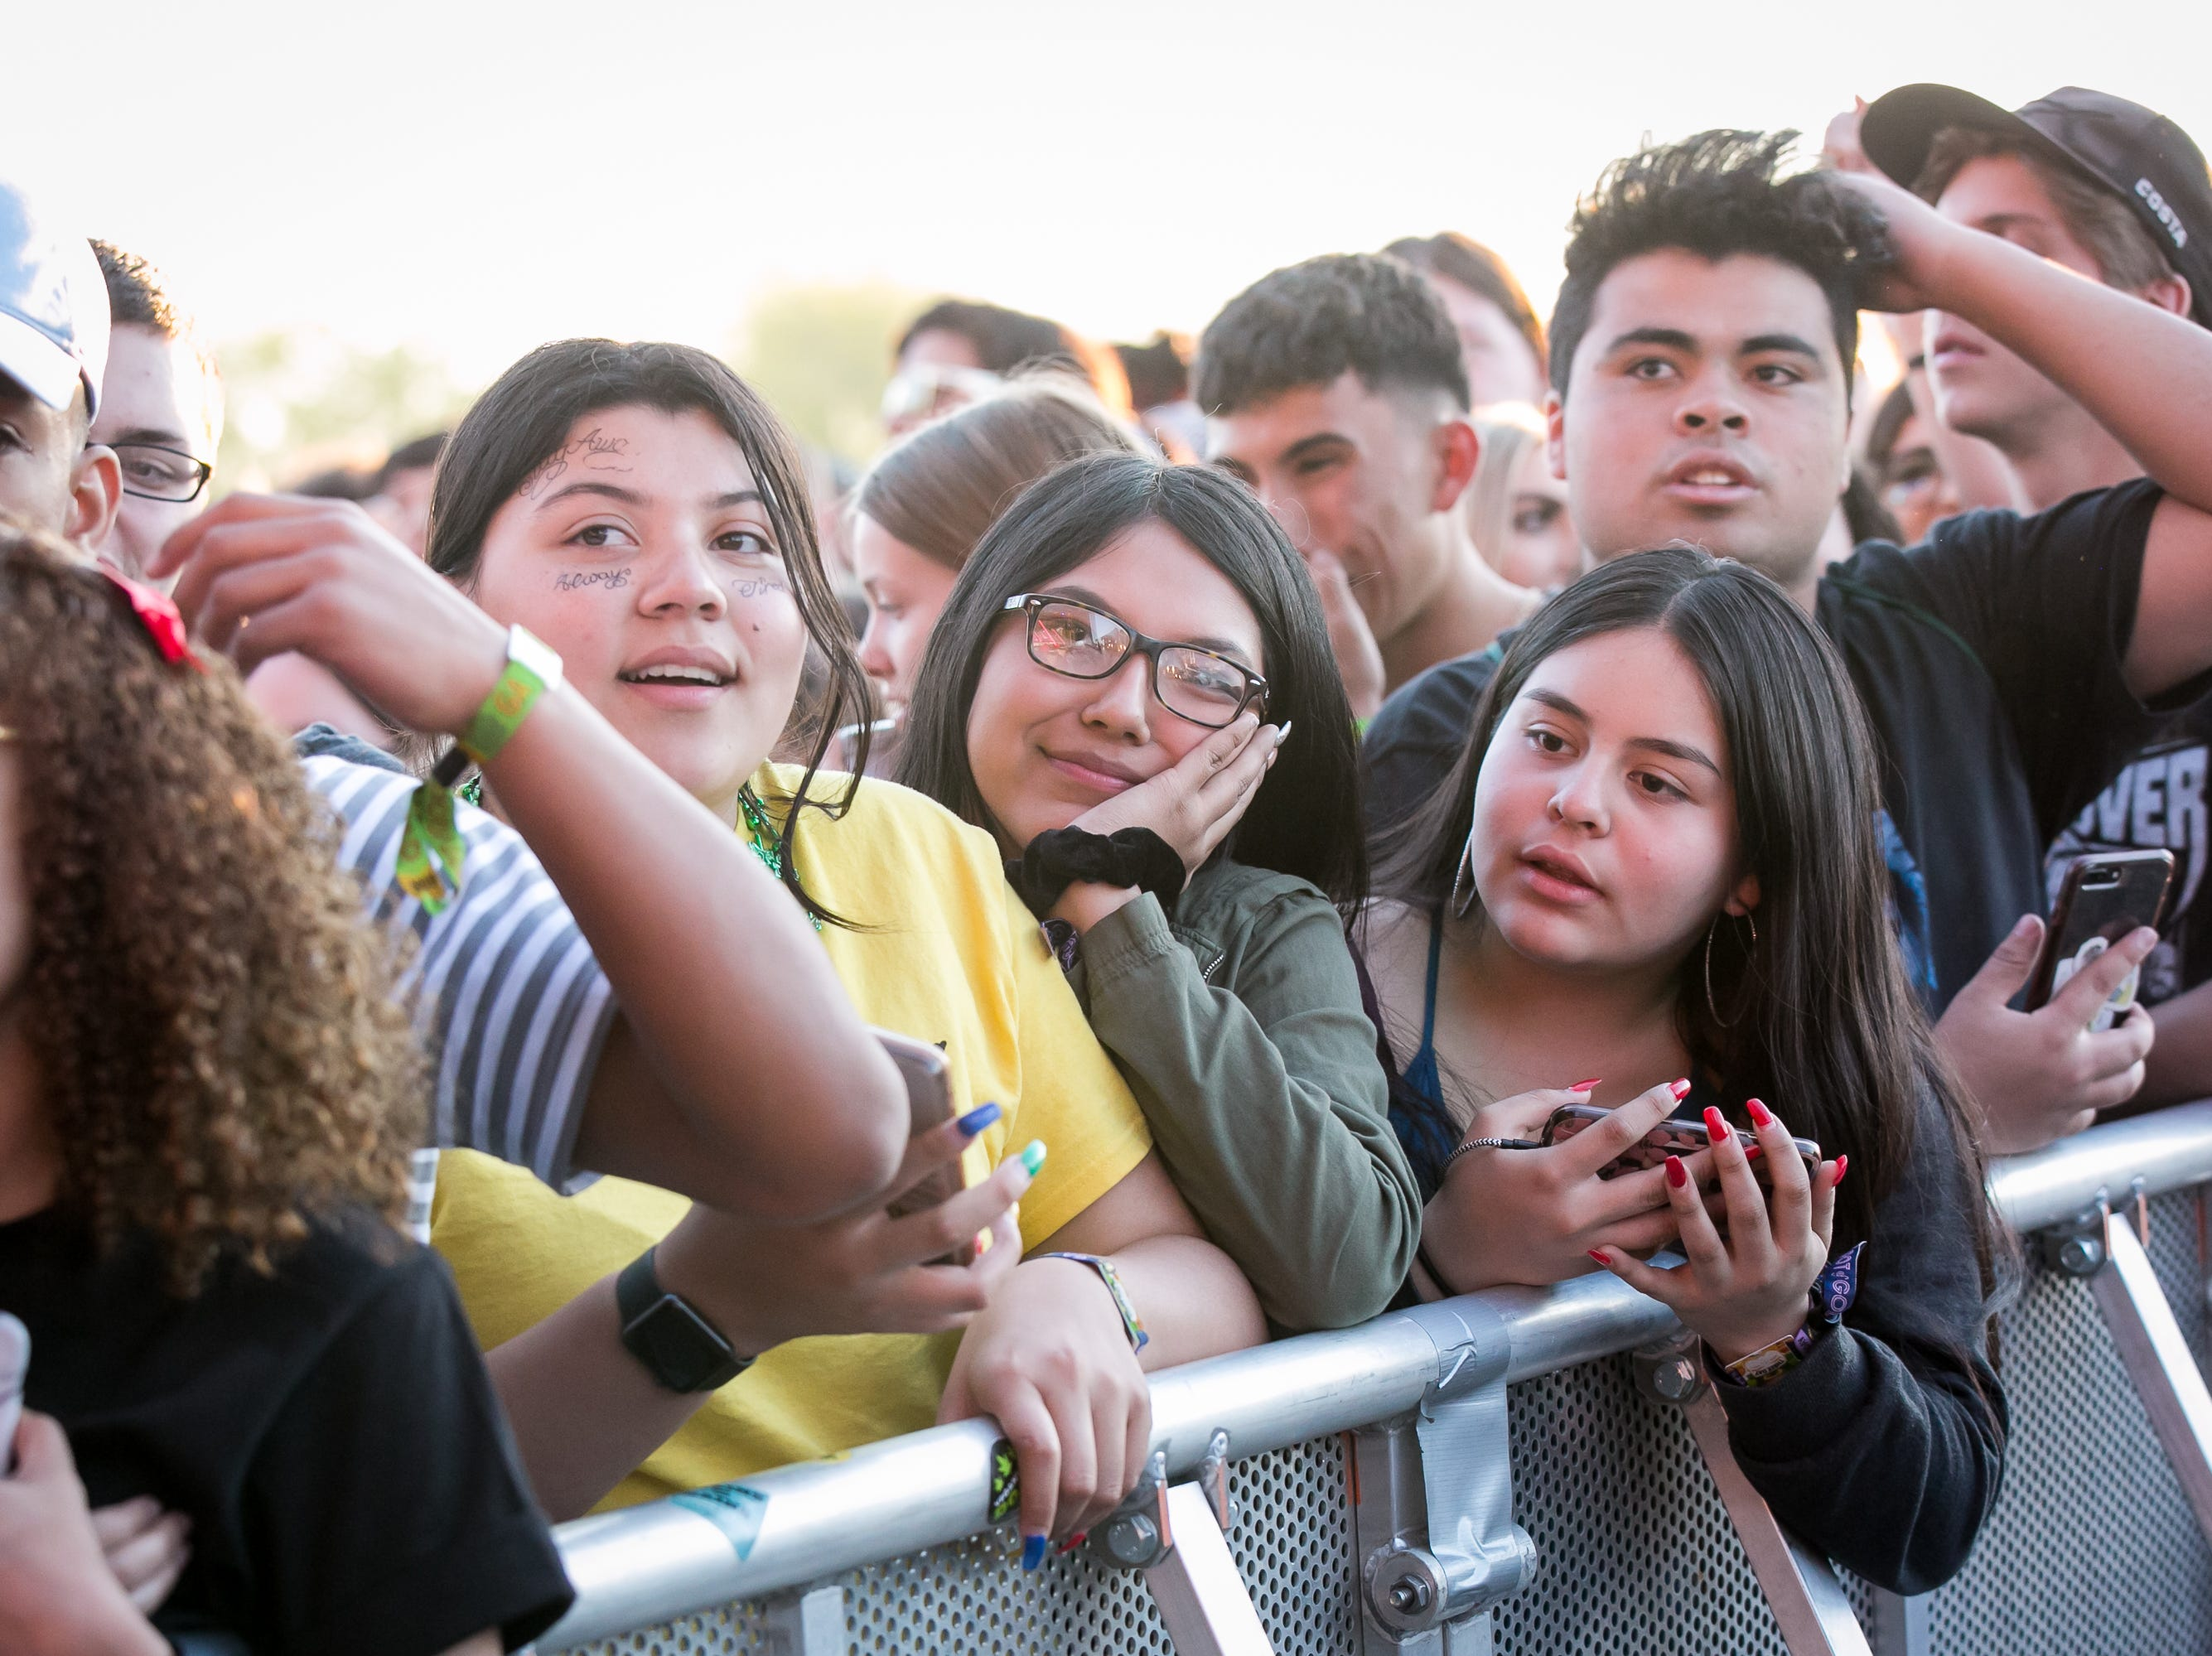 The girl in yellow paid a clever tribute to Post Malone's tattoos during Pot of Gold Music Festival on Sunday, March 17, 2019.